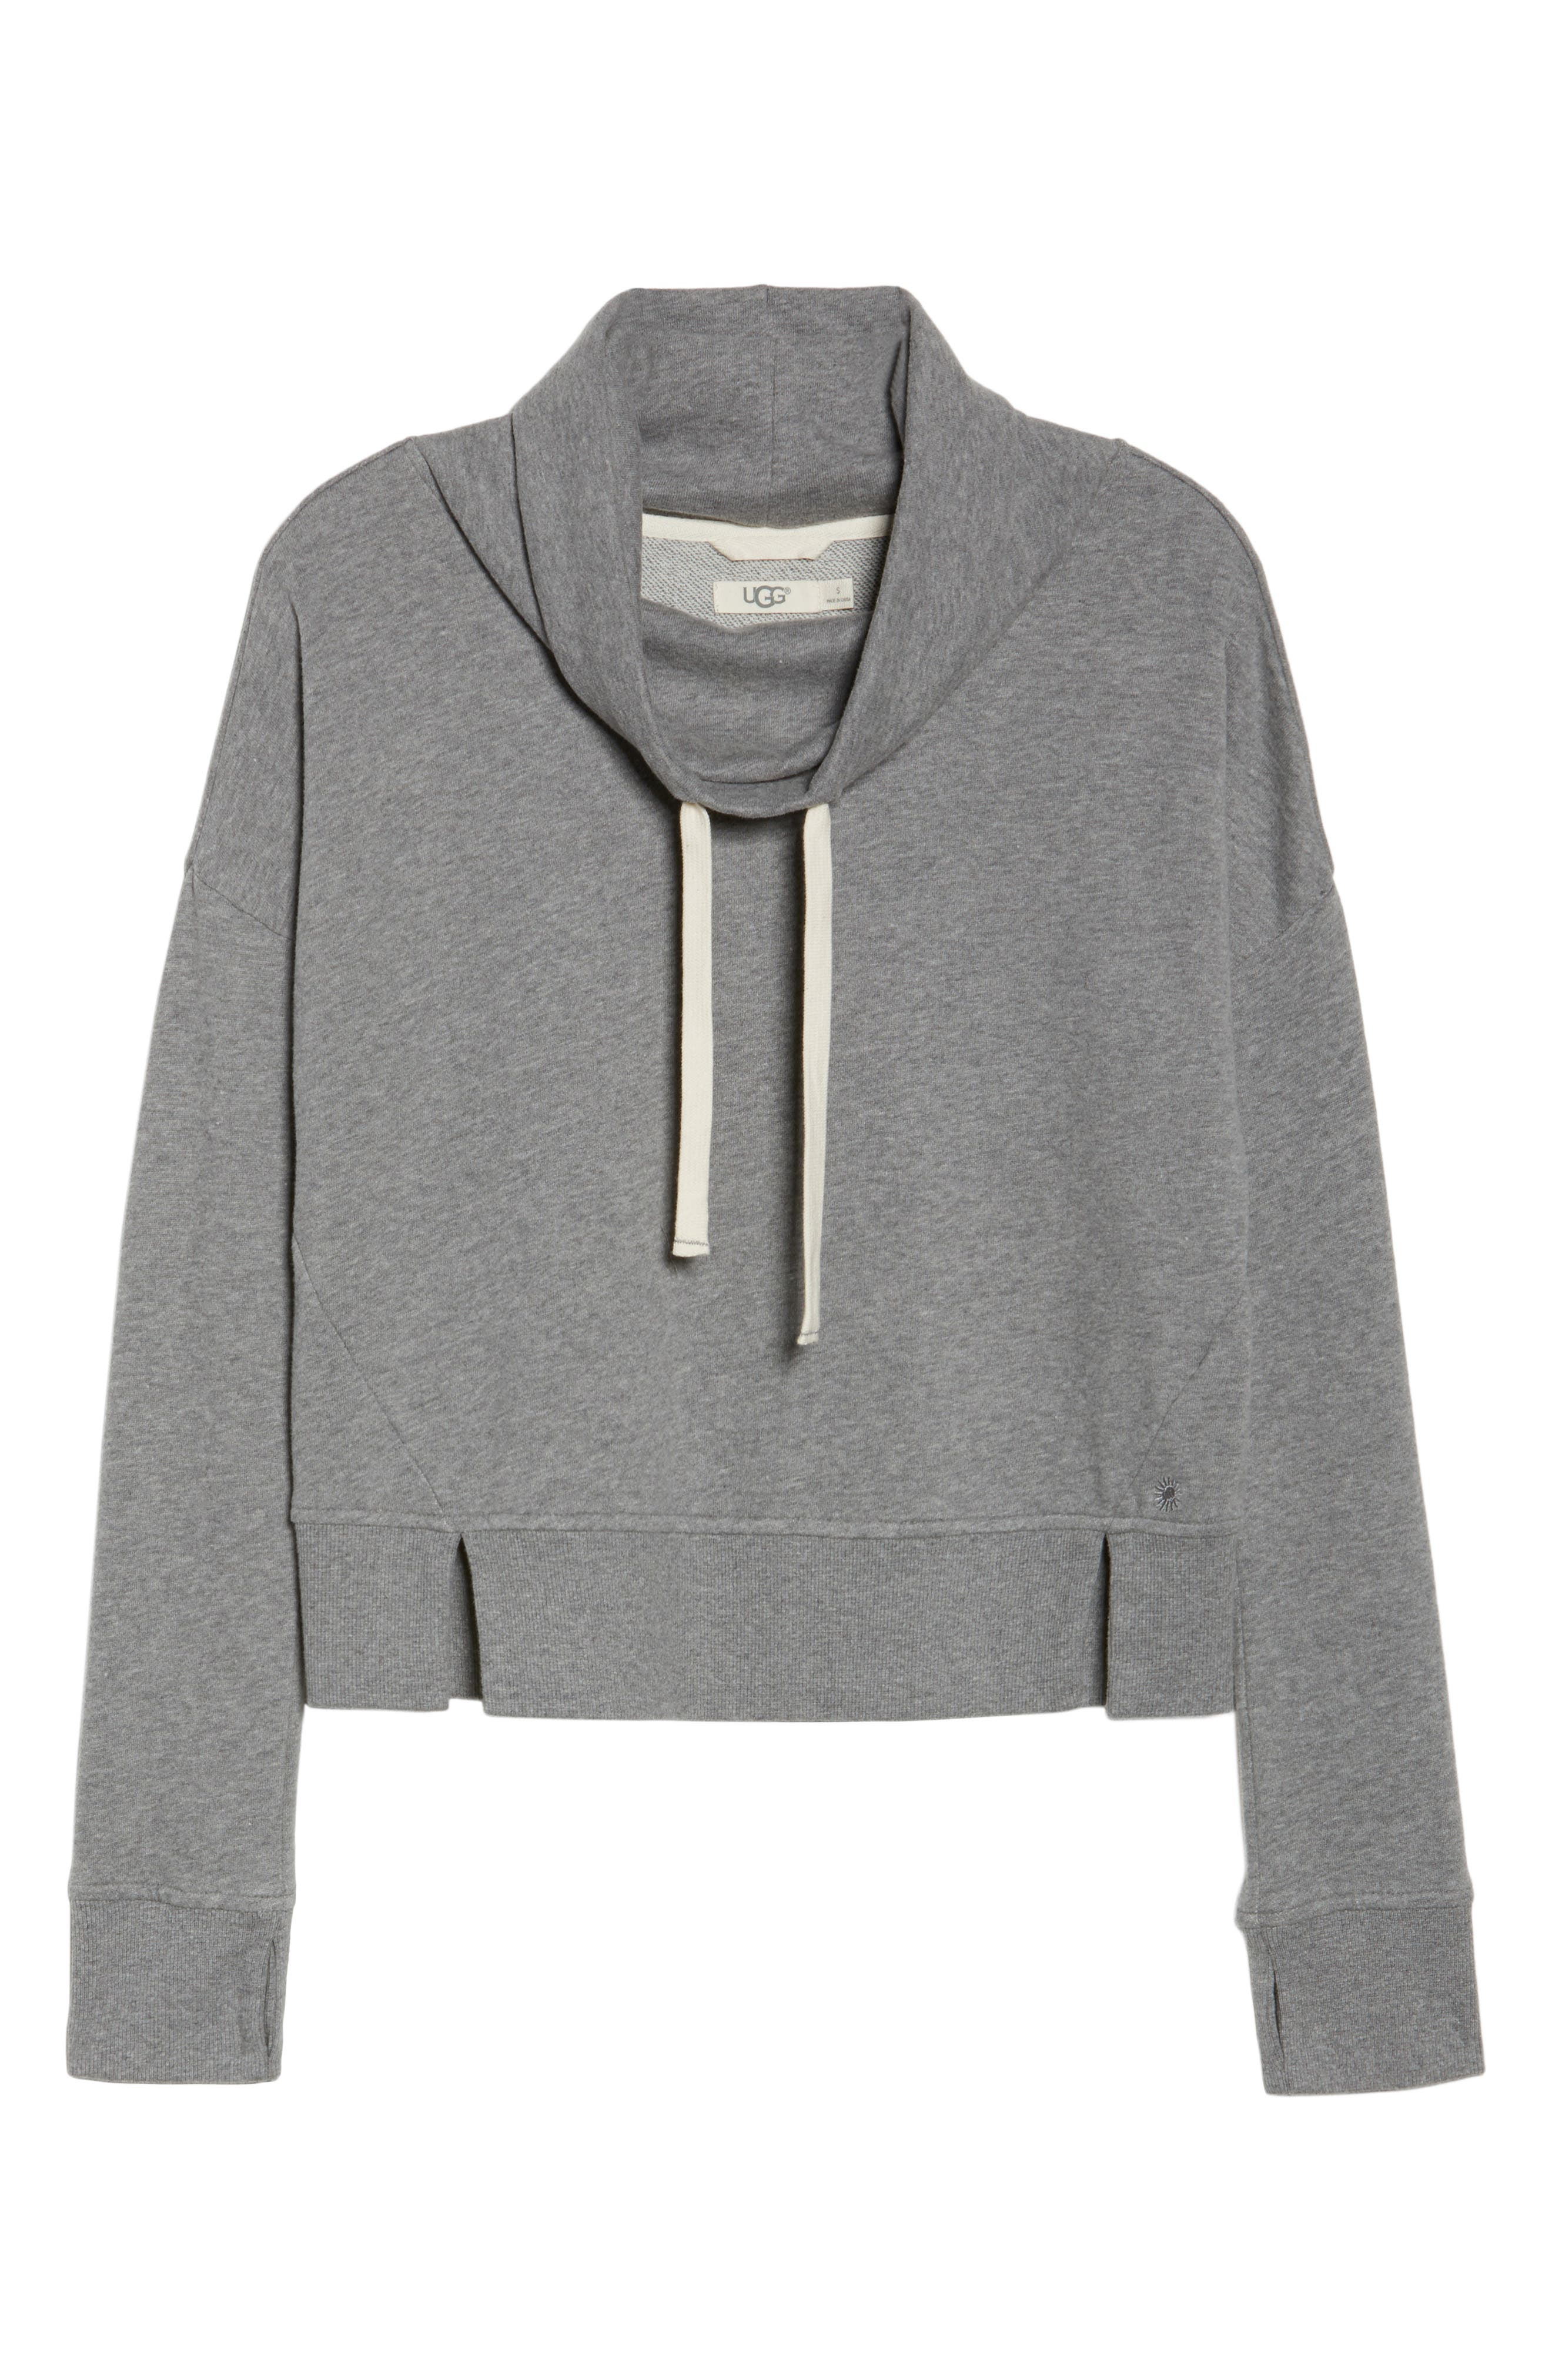 UGG<SUP>®</SUP>, Miya Funnel Neck Sweatshirt, Alternate thumbnail 6, color, GREY HEATHER